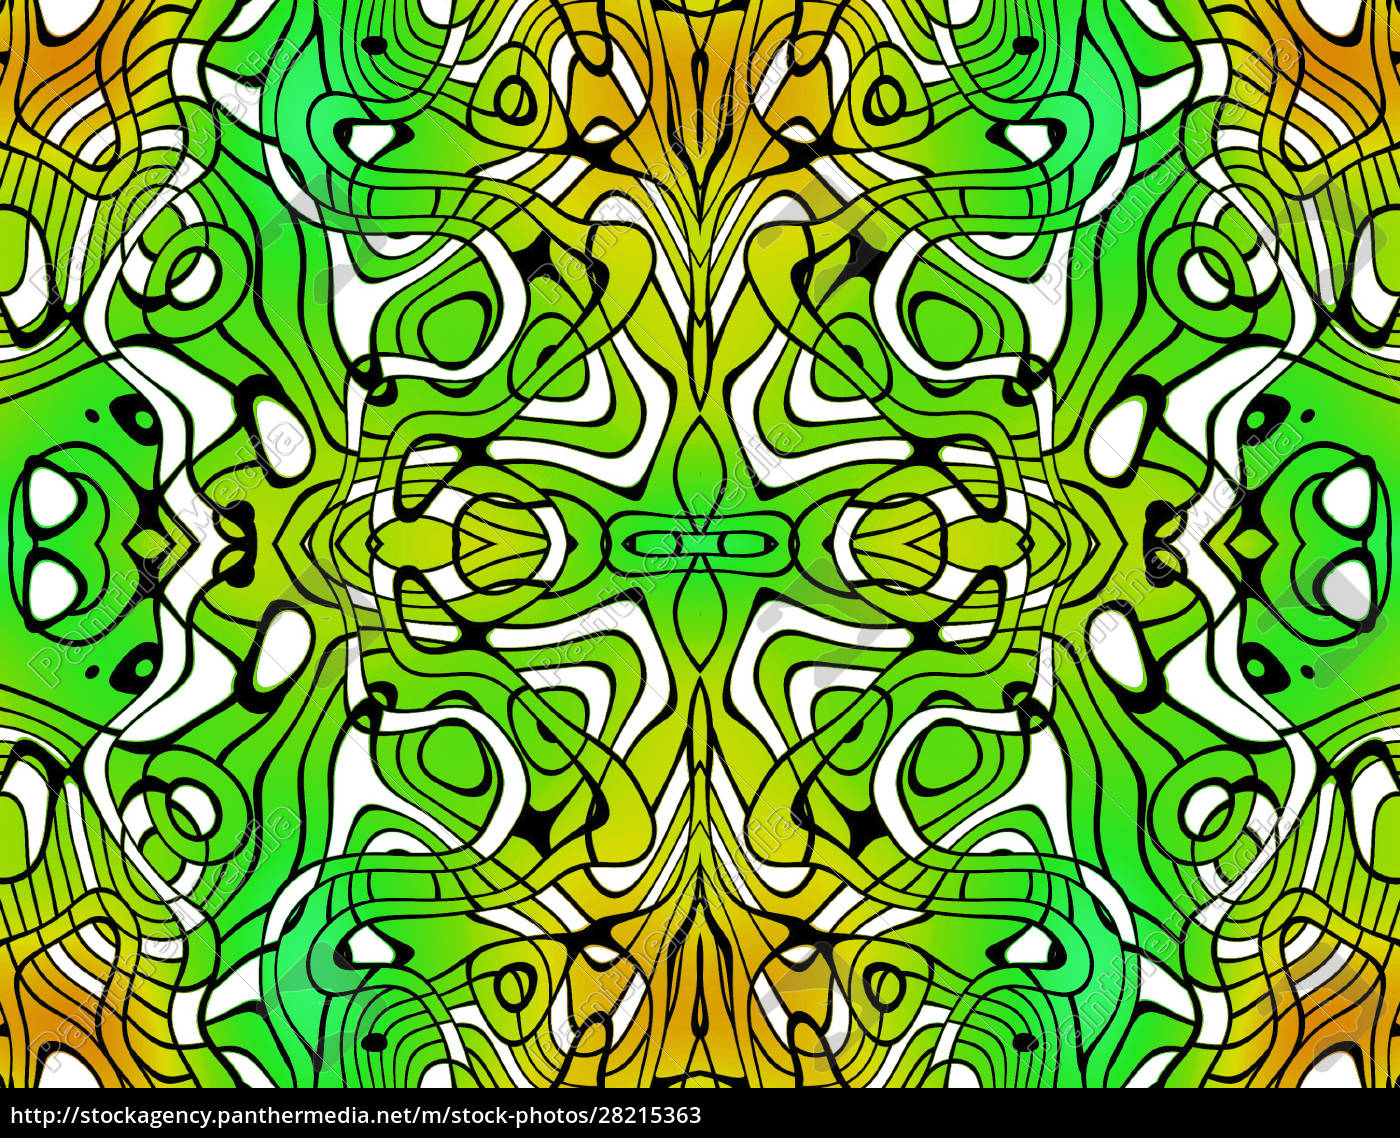 allover, repeating, pattern, tile, green, yellow - 28215363